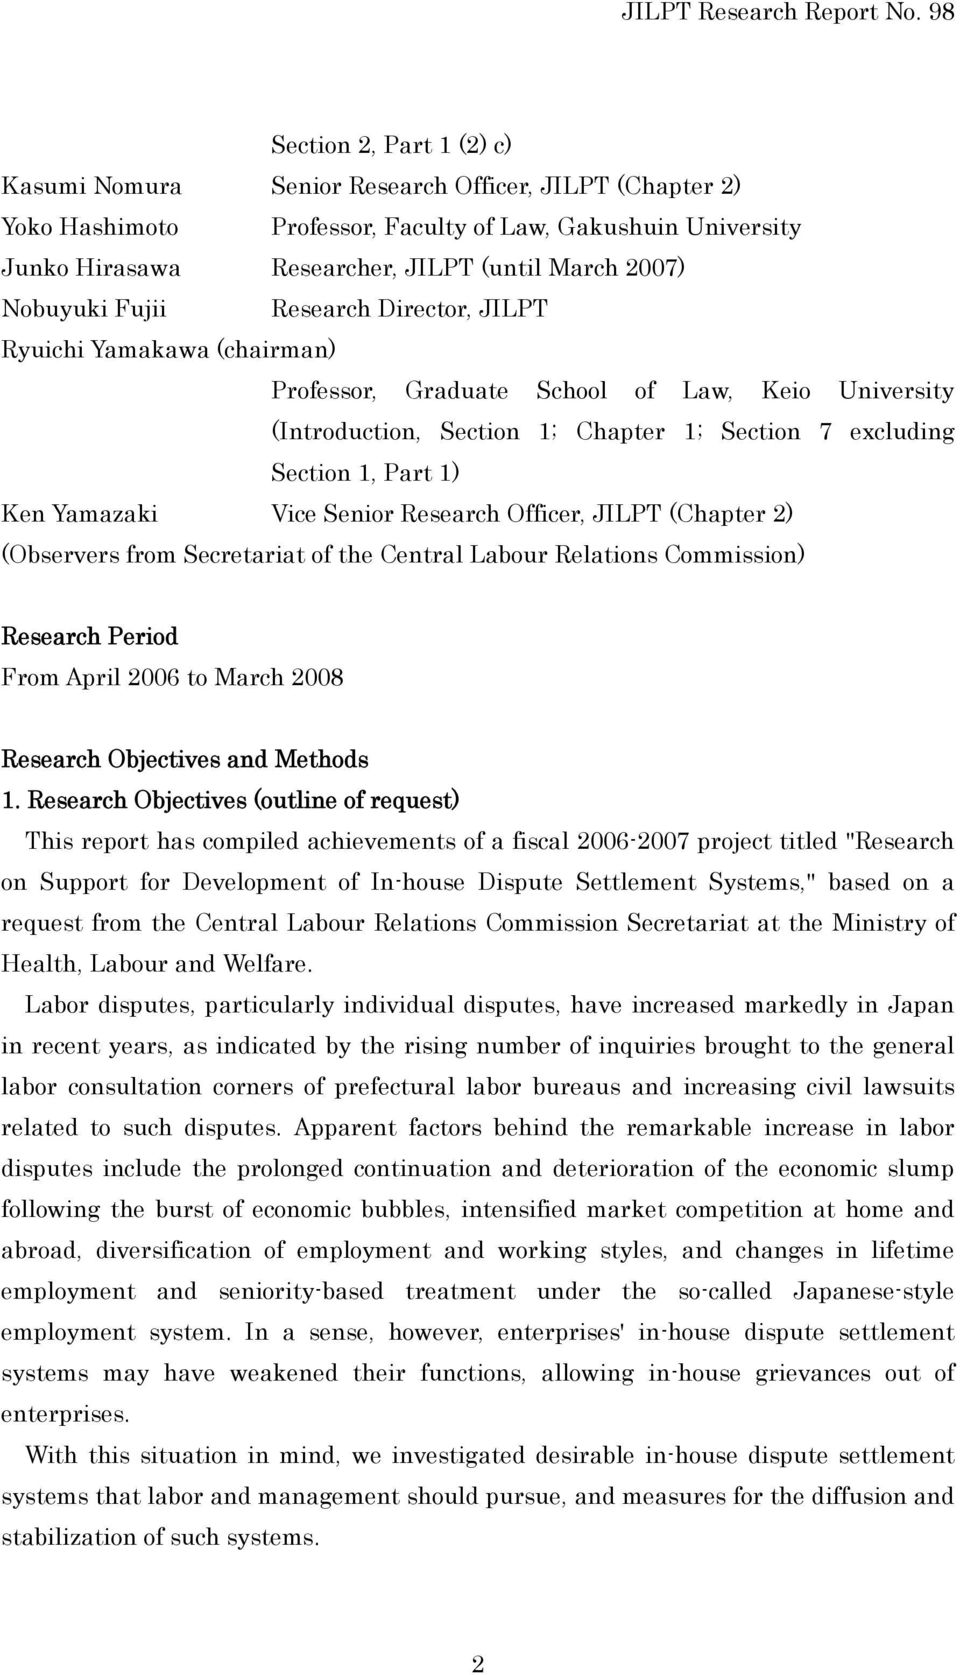 Yamazaki Vice Senior Research Officer, JILPT (Chapter 2) (Observers from Secretariat of the Central Labour Relations Commission) Research Period From April 2006 to March 2008 Research Objectives and